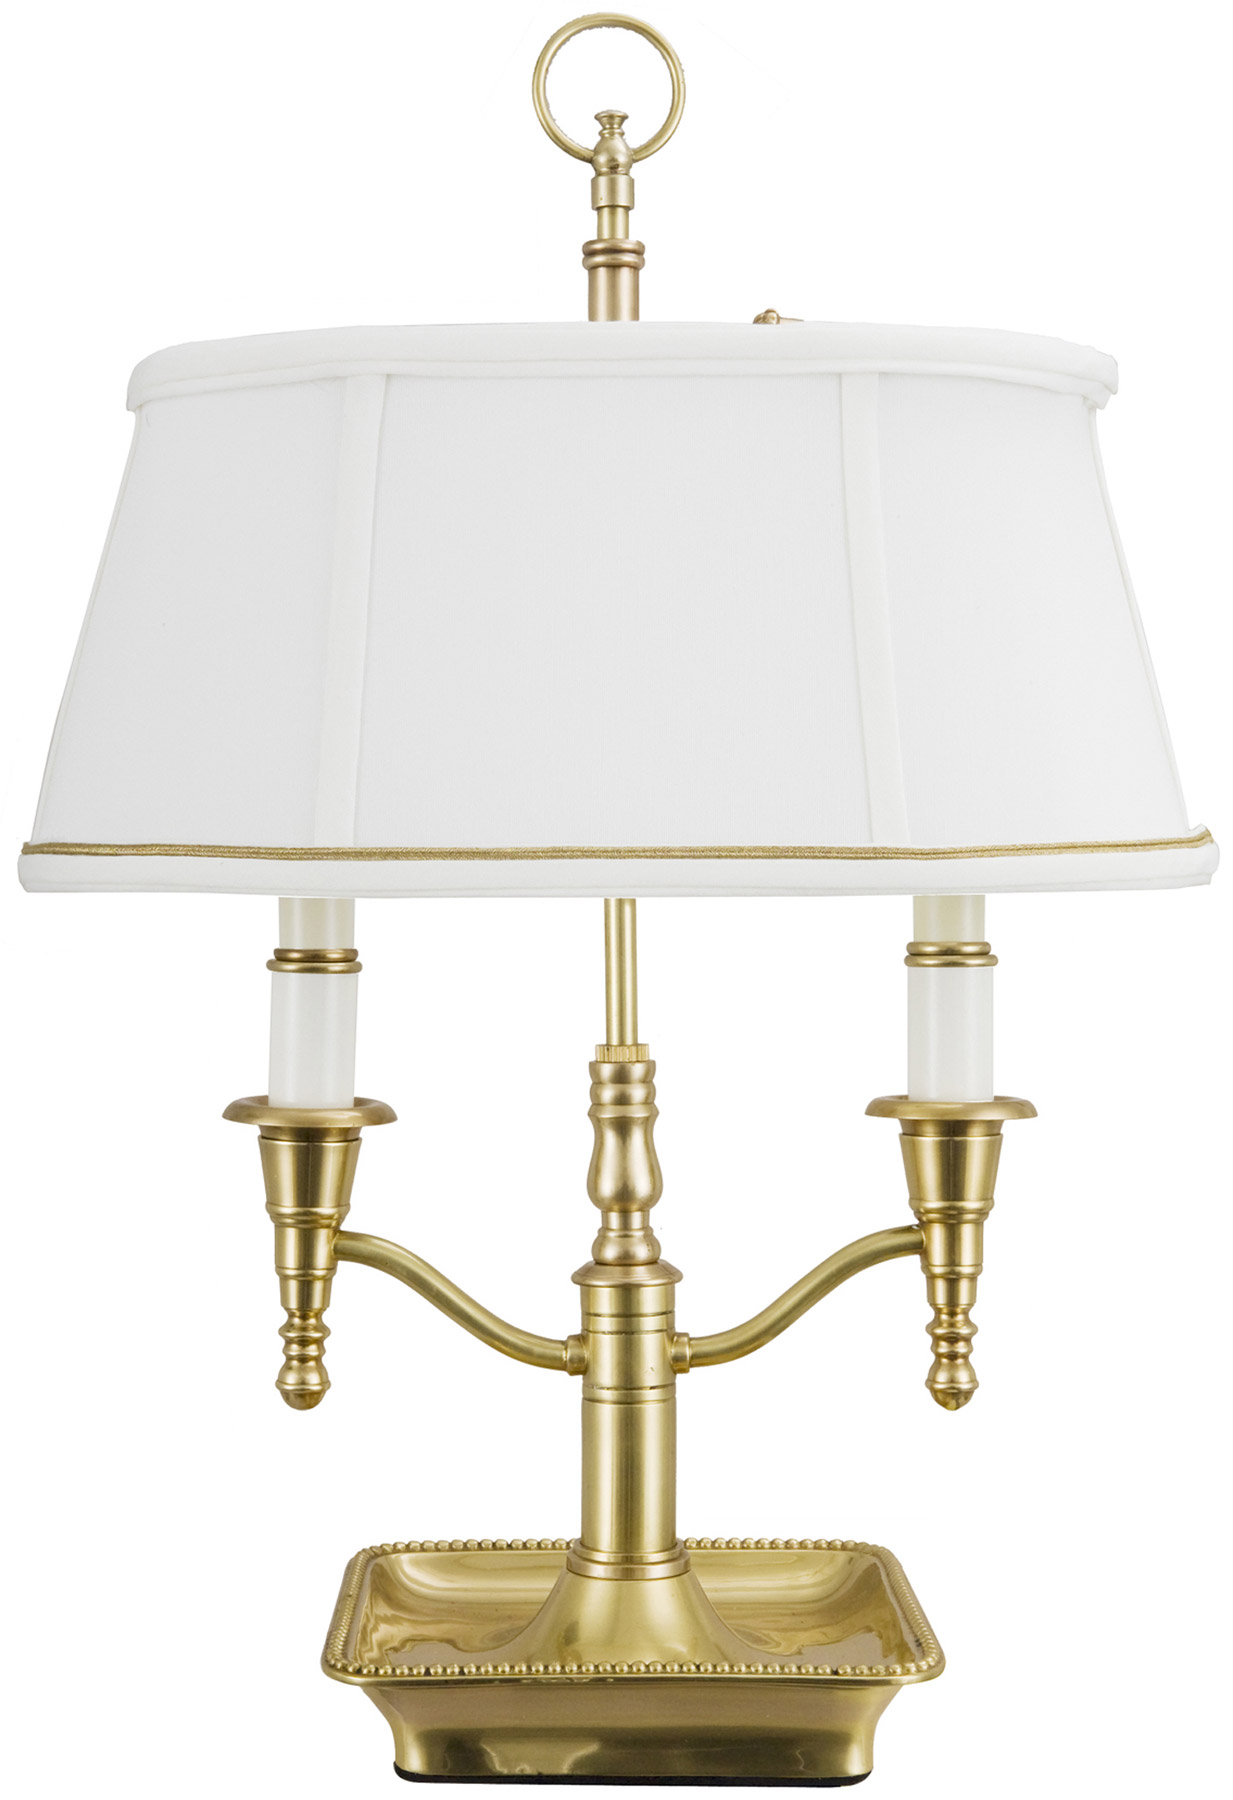 sc 1 st  L&s Beautiful & Frederick Cooper 65138 Bartemius Table Lamp